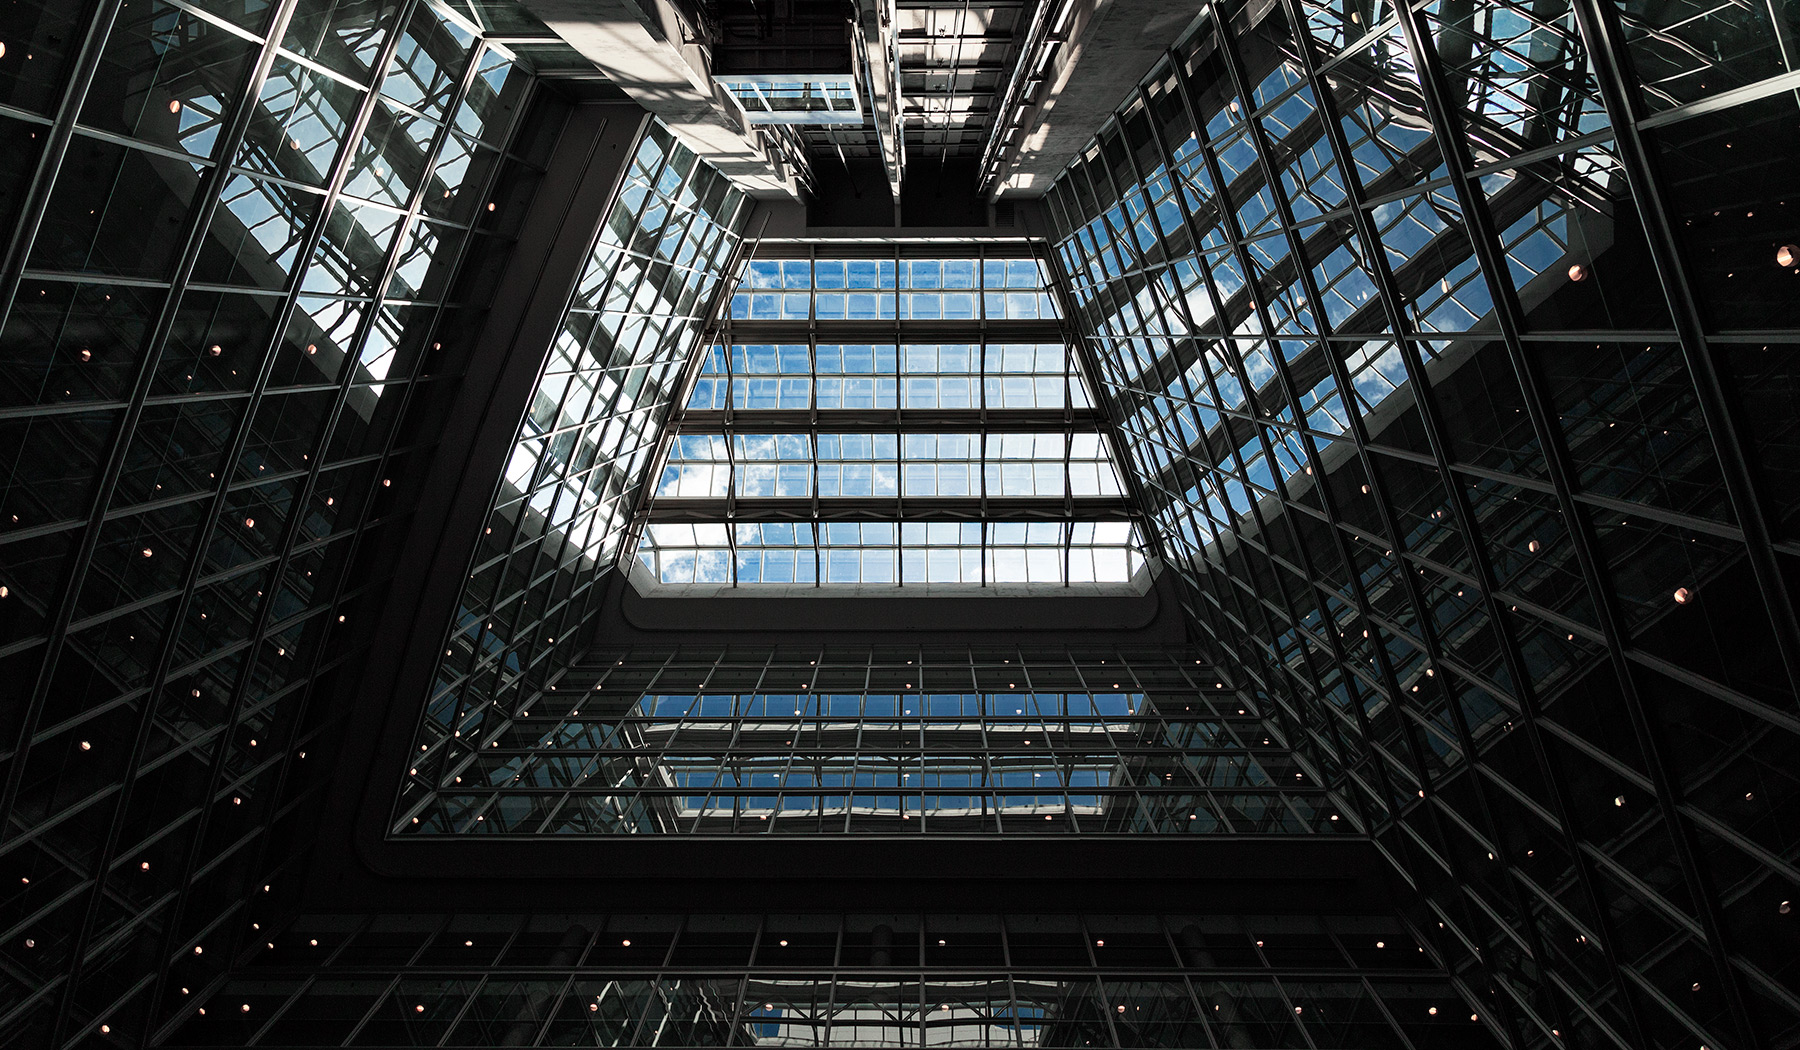 20150904. Looking up a 16 storey neomodern condominium atrium.